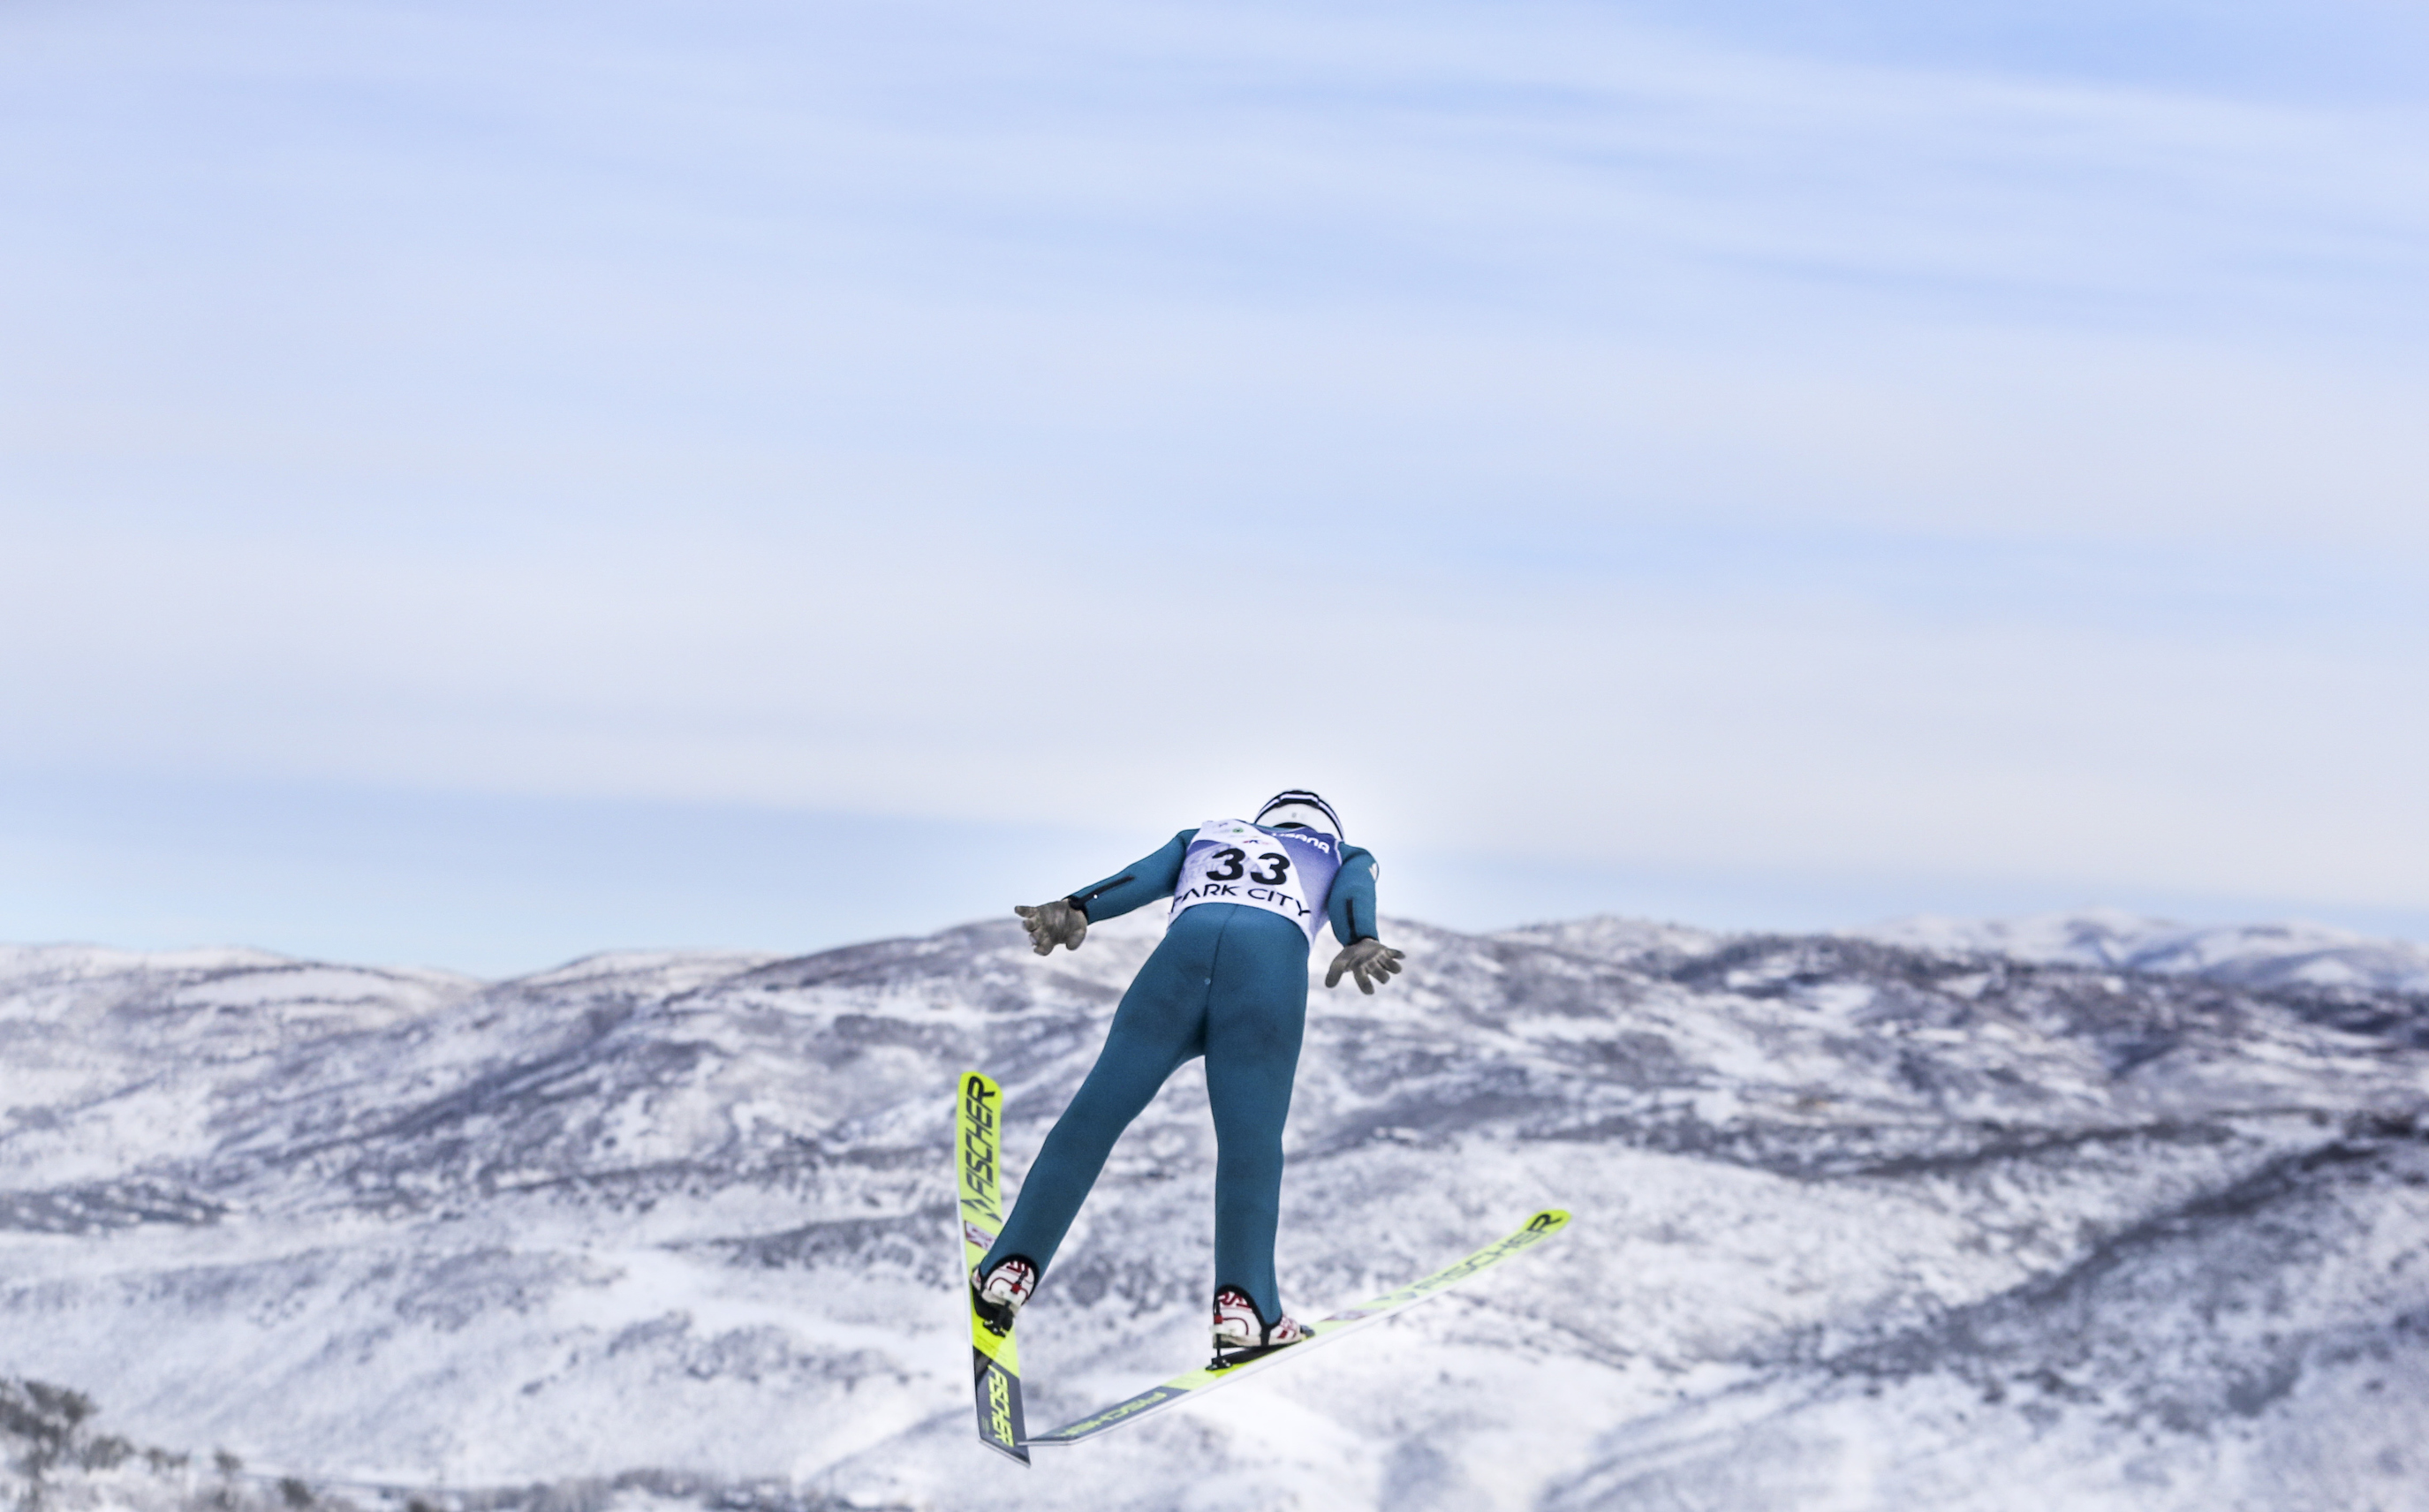 Samuel Mraz of Austria takes his trial jump before the ski jumping portion of competition during the FIS Nordic Combined Continental Cup on the ski jumping hill at the Utah Olympic Park on Sunday, Dec. 15, 2019. Mraz scored 109.6 points on his jump placing him 25th going into the ski racing portion of the competition.